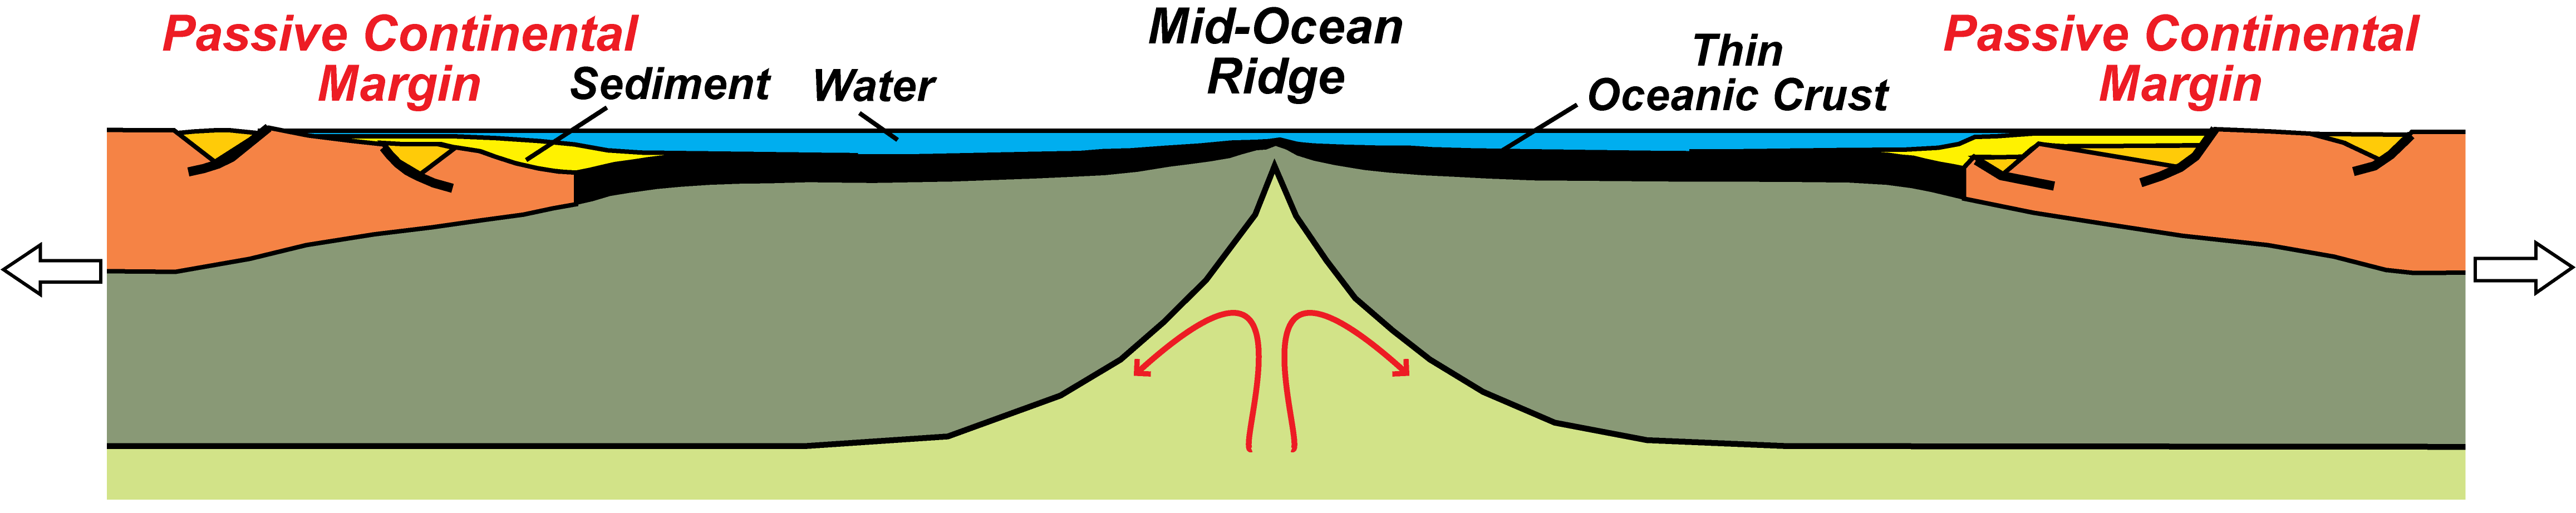 block diagram of earth's surface layers at oceanic spreading center